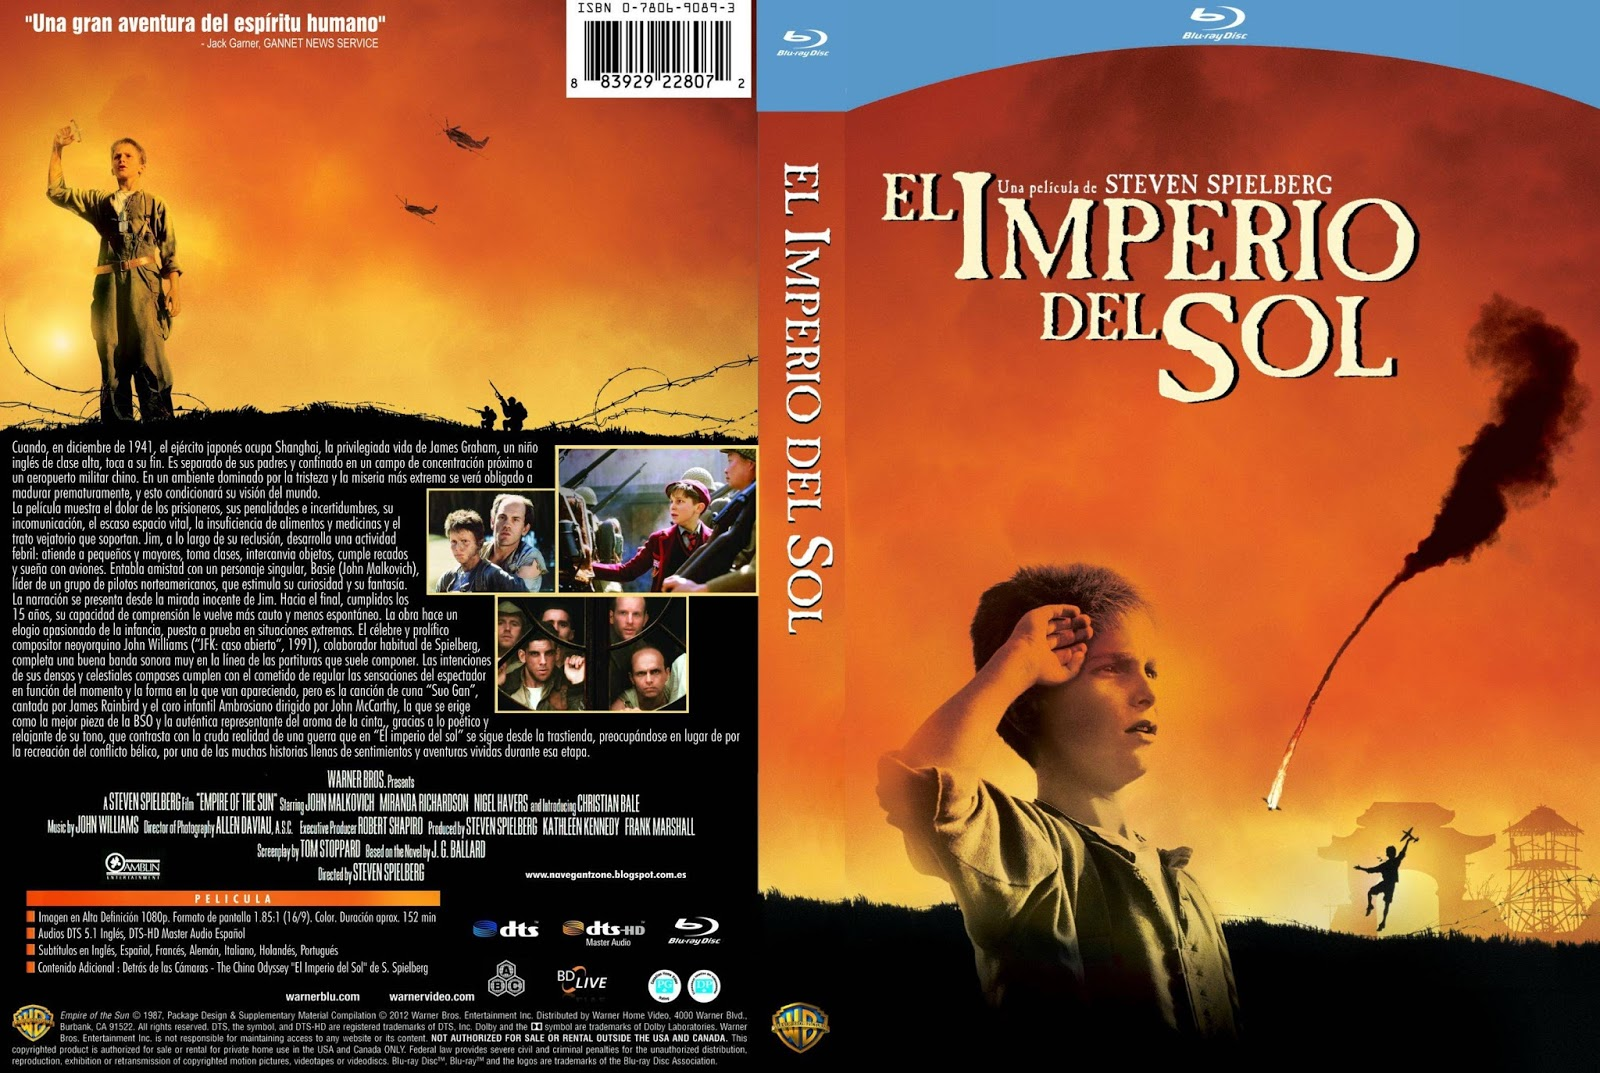 an analysis of the 1987 movie the empire of the sun by steven spielberg Directed by les mayfield with martin sheen, steven spielberg, jg ballard, christian bale a documentary about the making of director steven spielberg's film empire of the sun (1987.